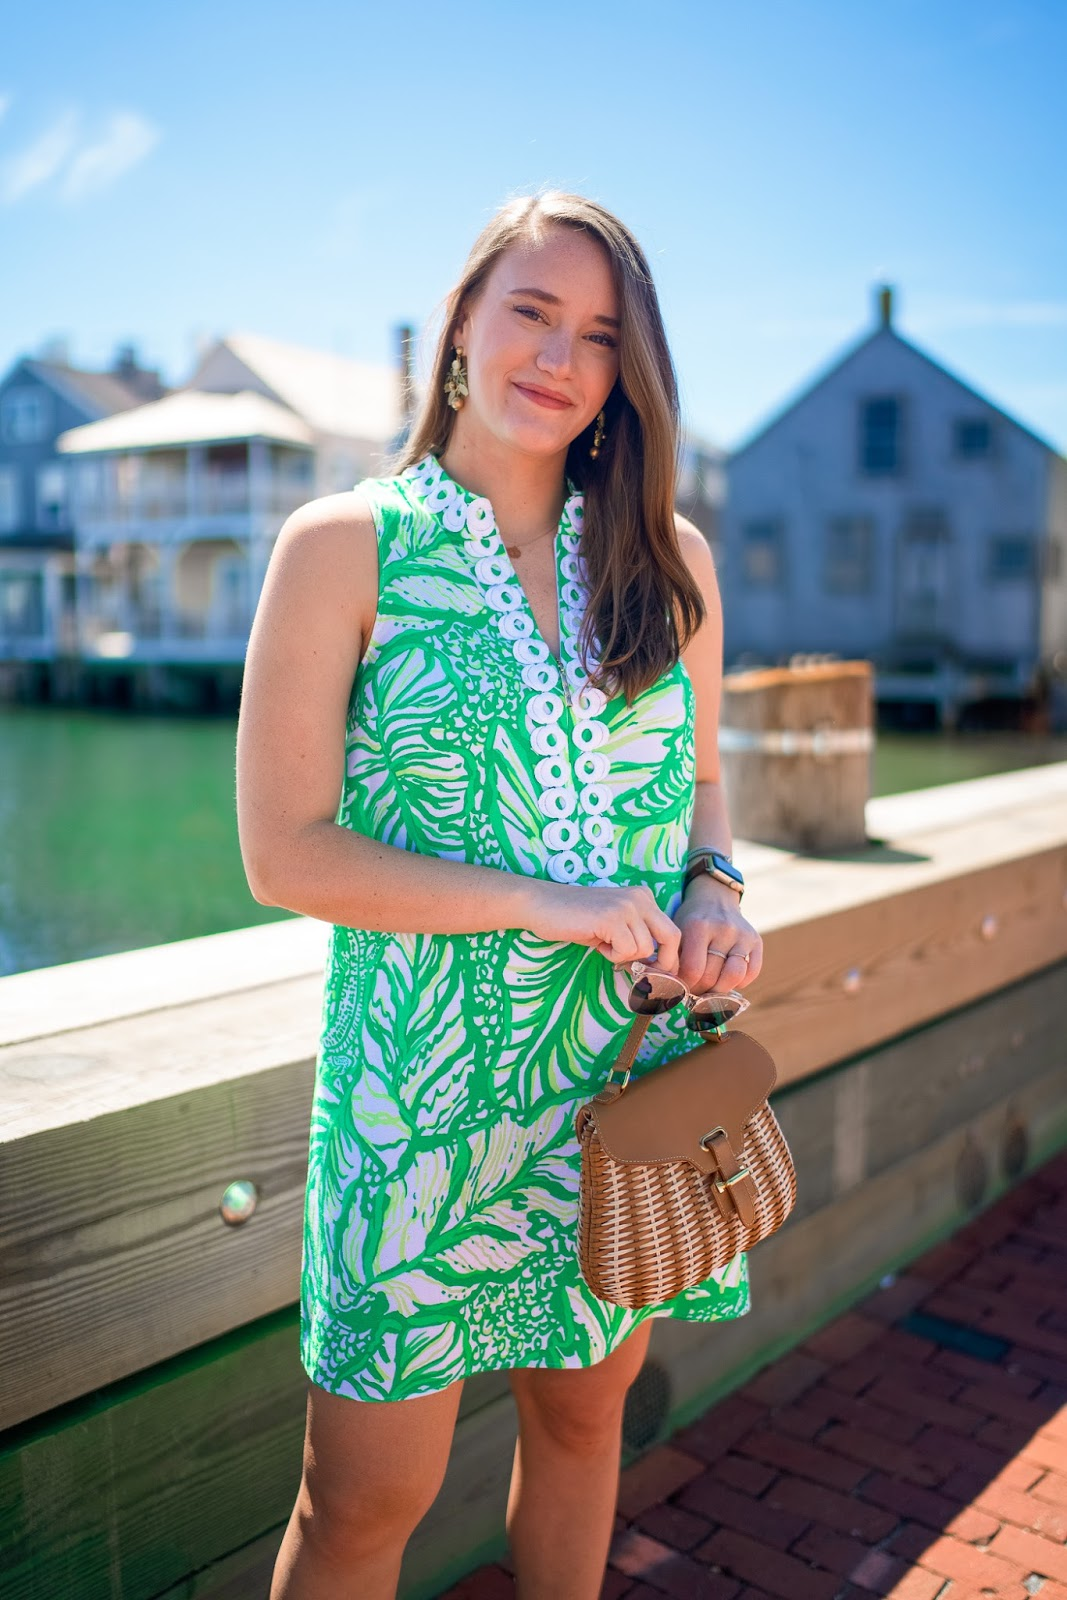 Lilly Pulitzer Jane Shift In Nantucket New York City Fashion And Lifestyle Blog